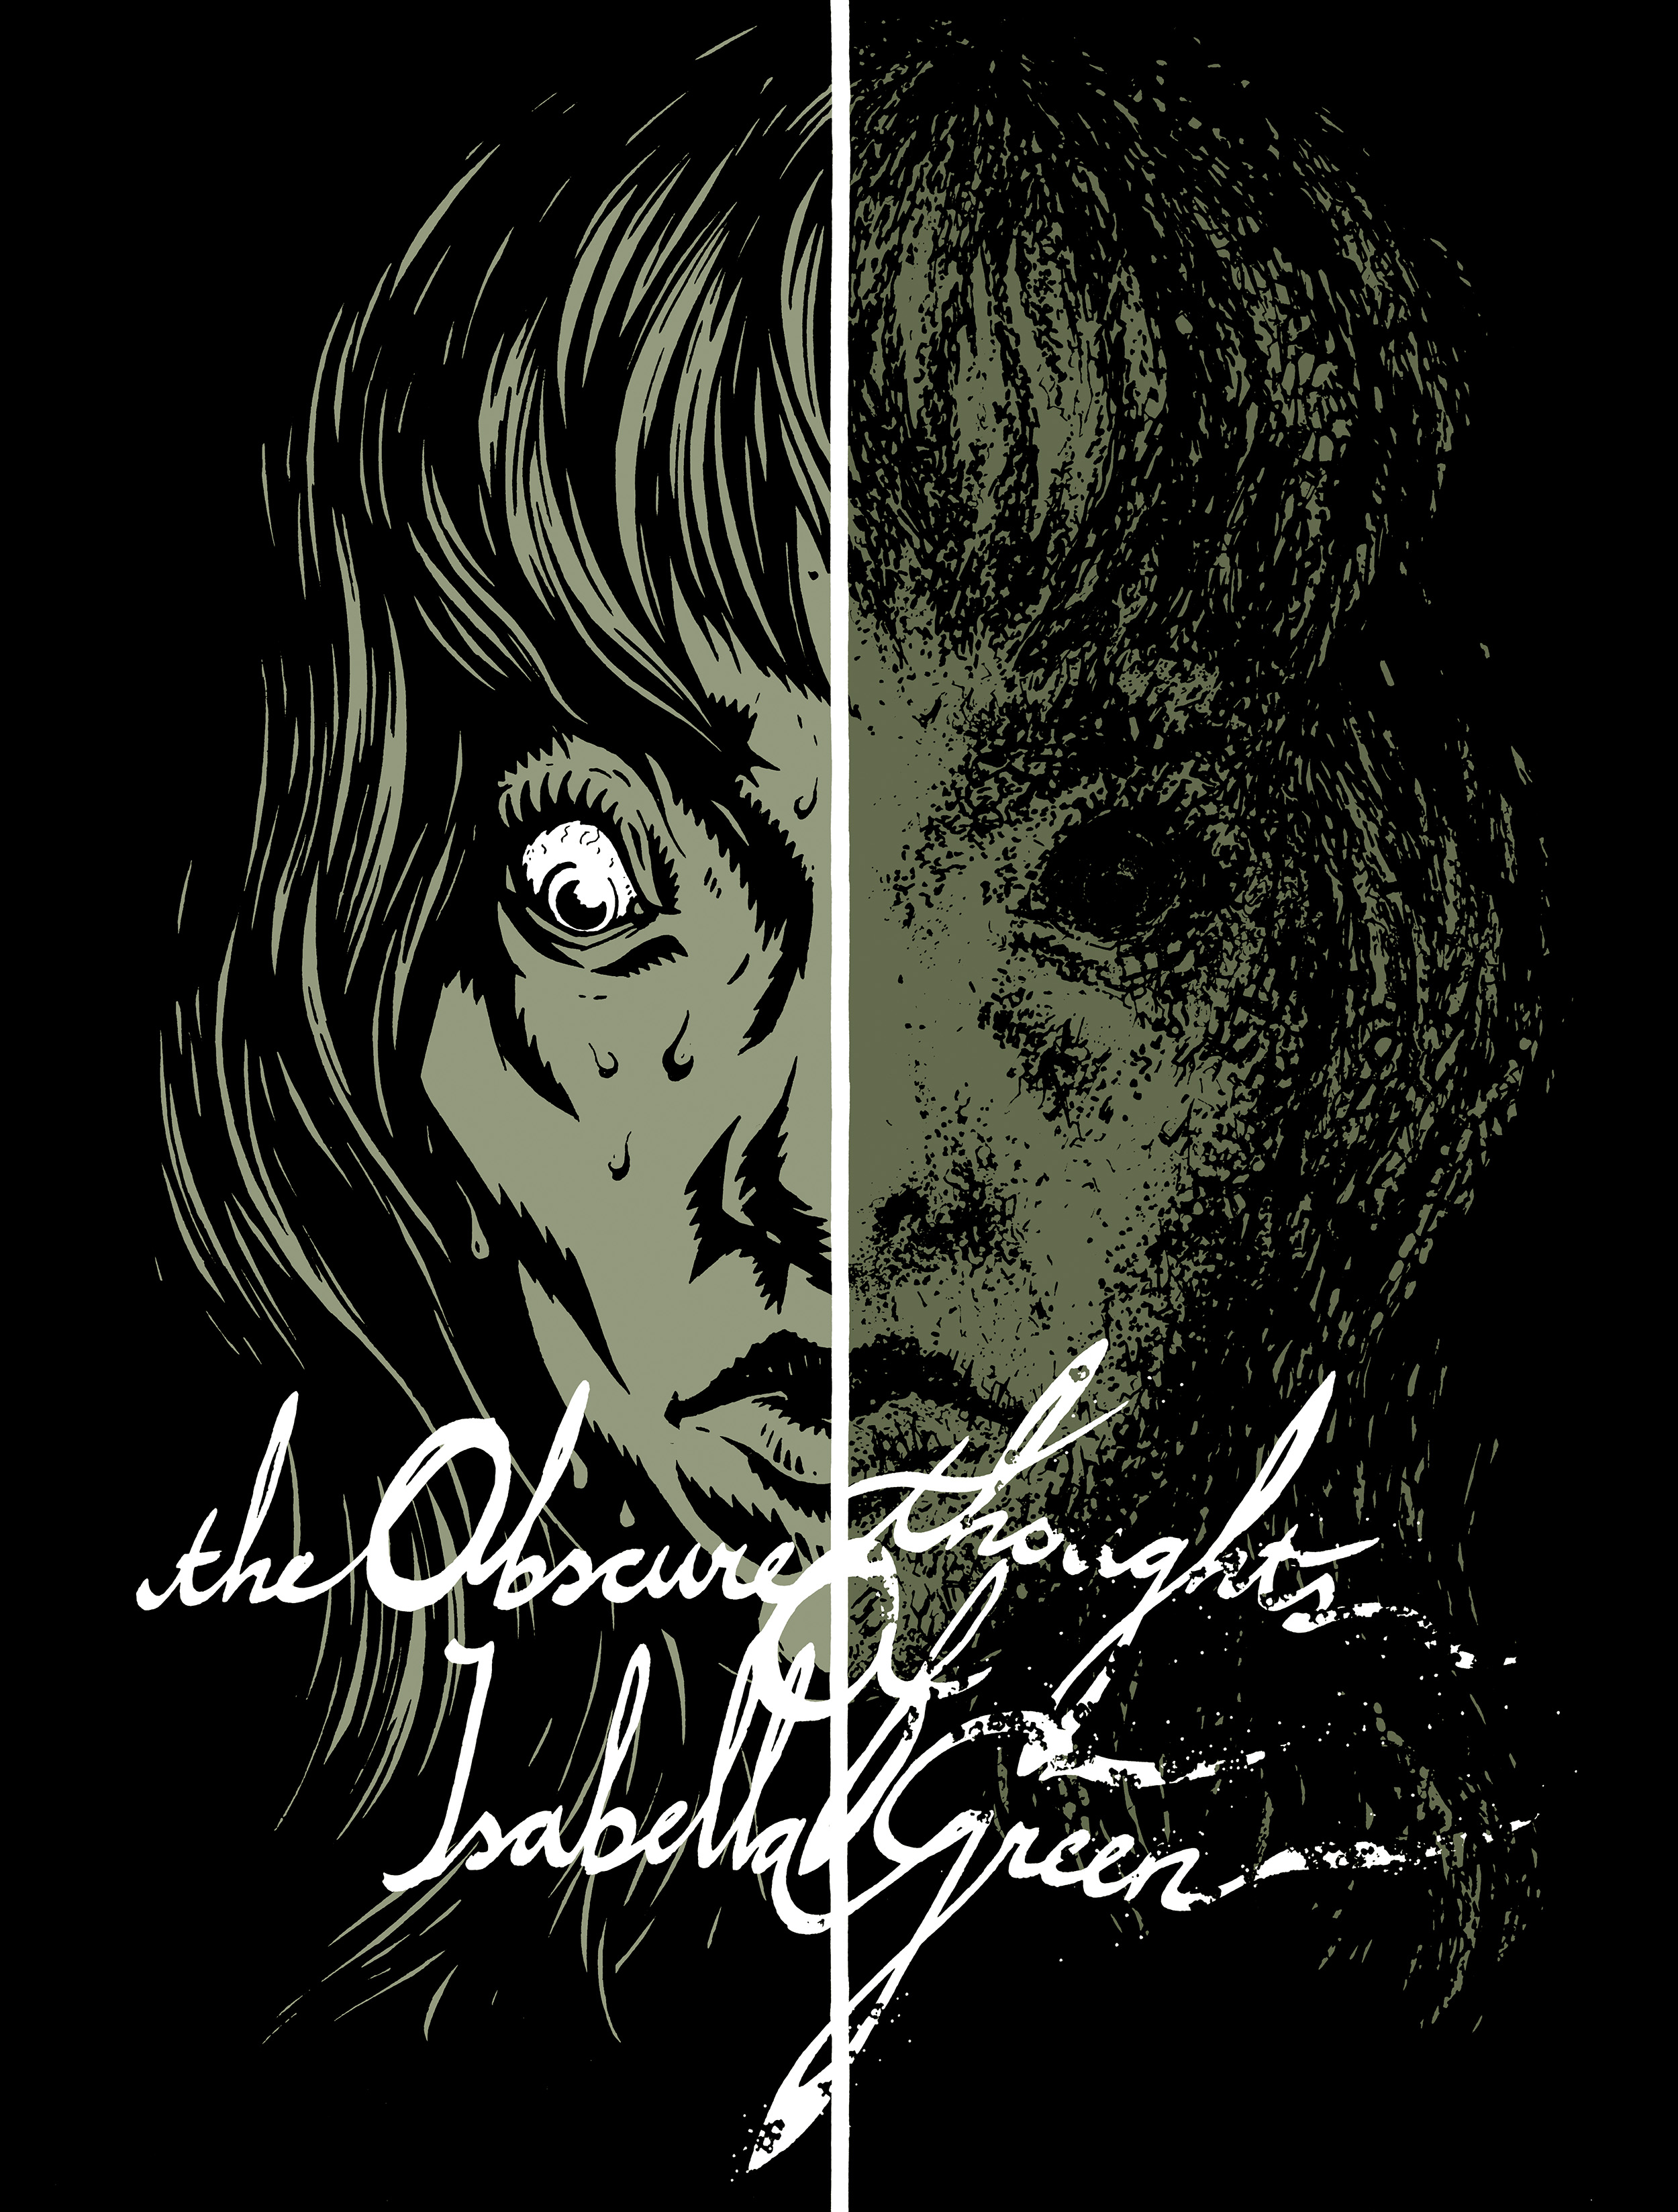 The Obscure Thoughts of Isabella Green: cover